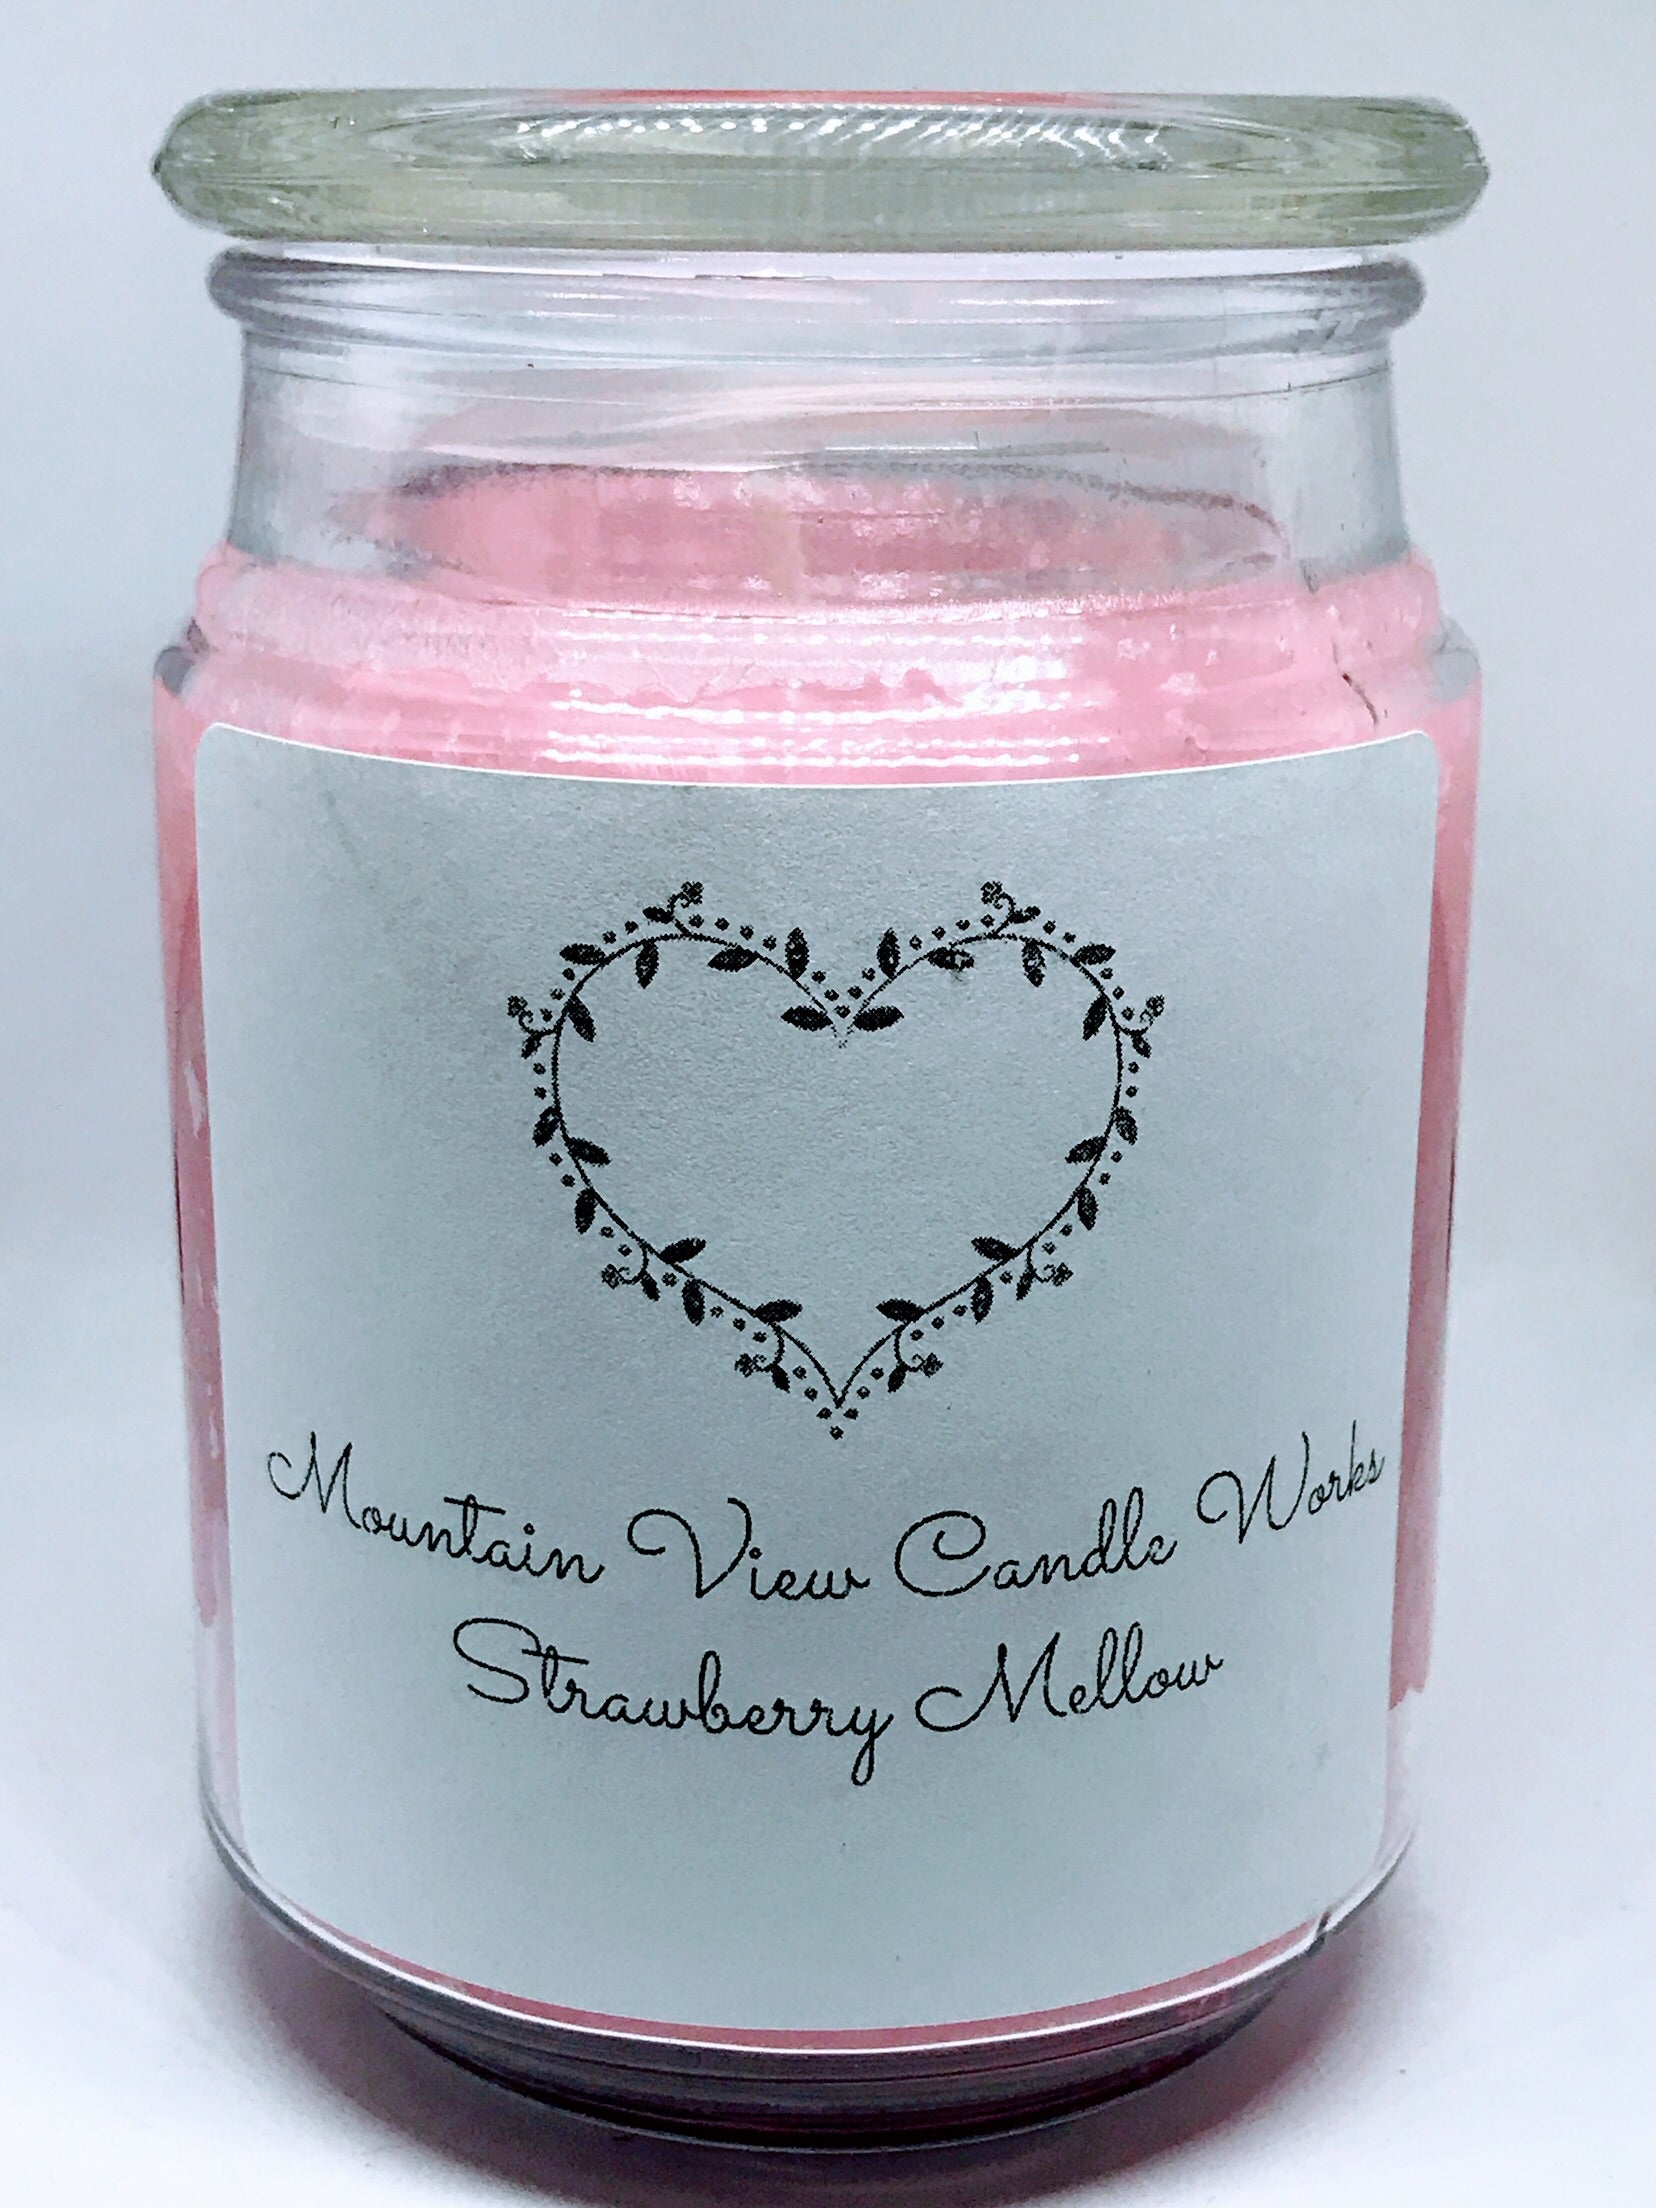 Strawberry melon jar candle